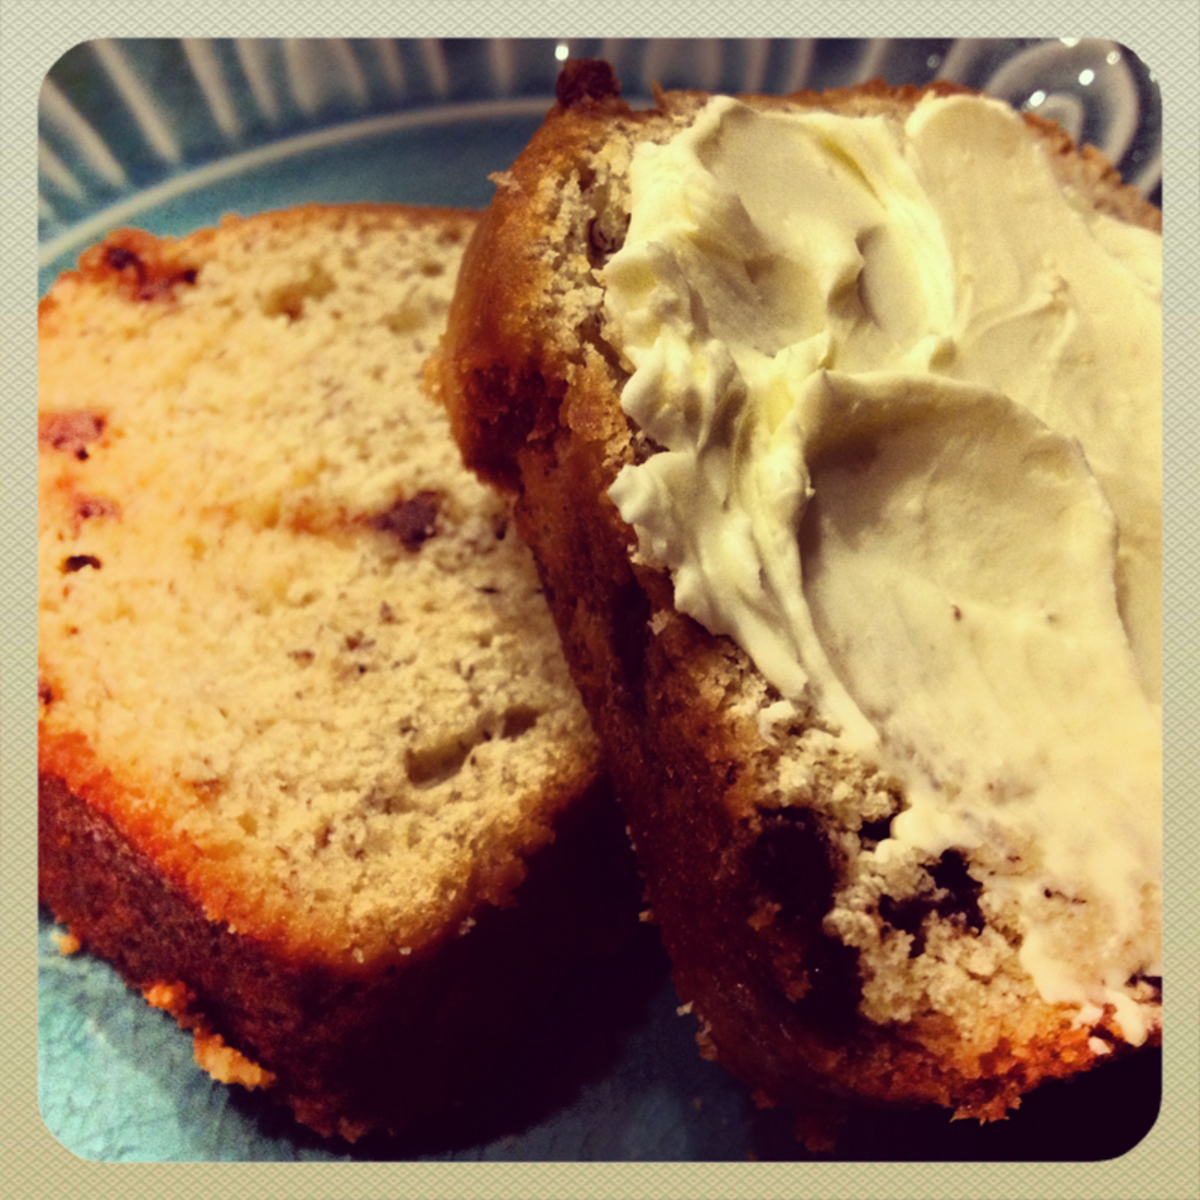 Classic Banana Bread with Chocolate Chips